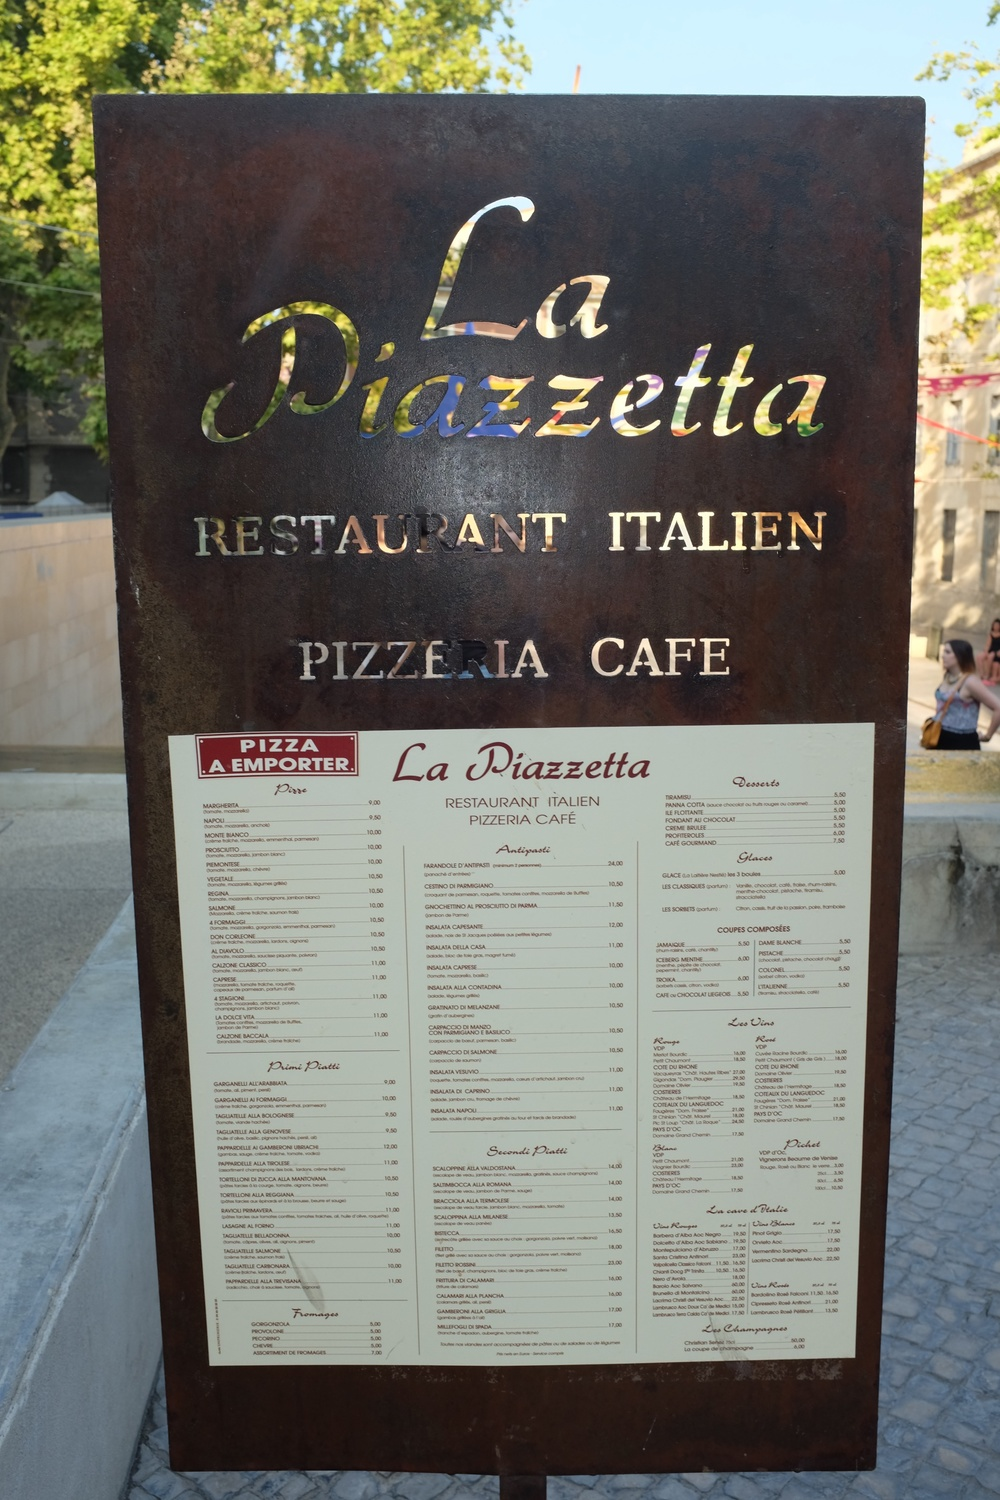 The Menu for La Piazzetta